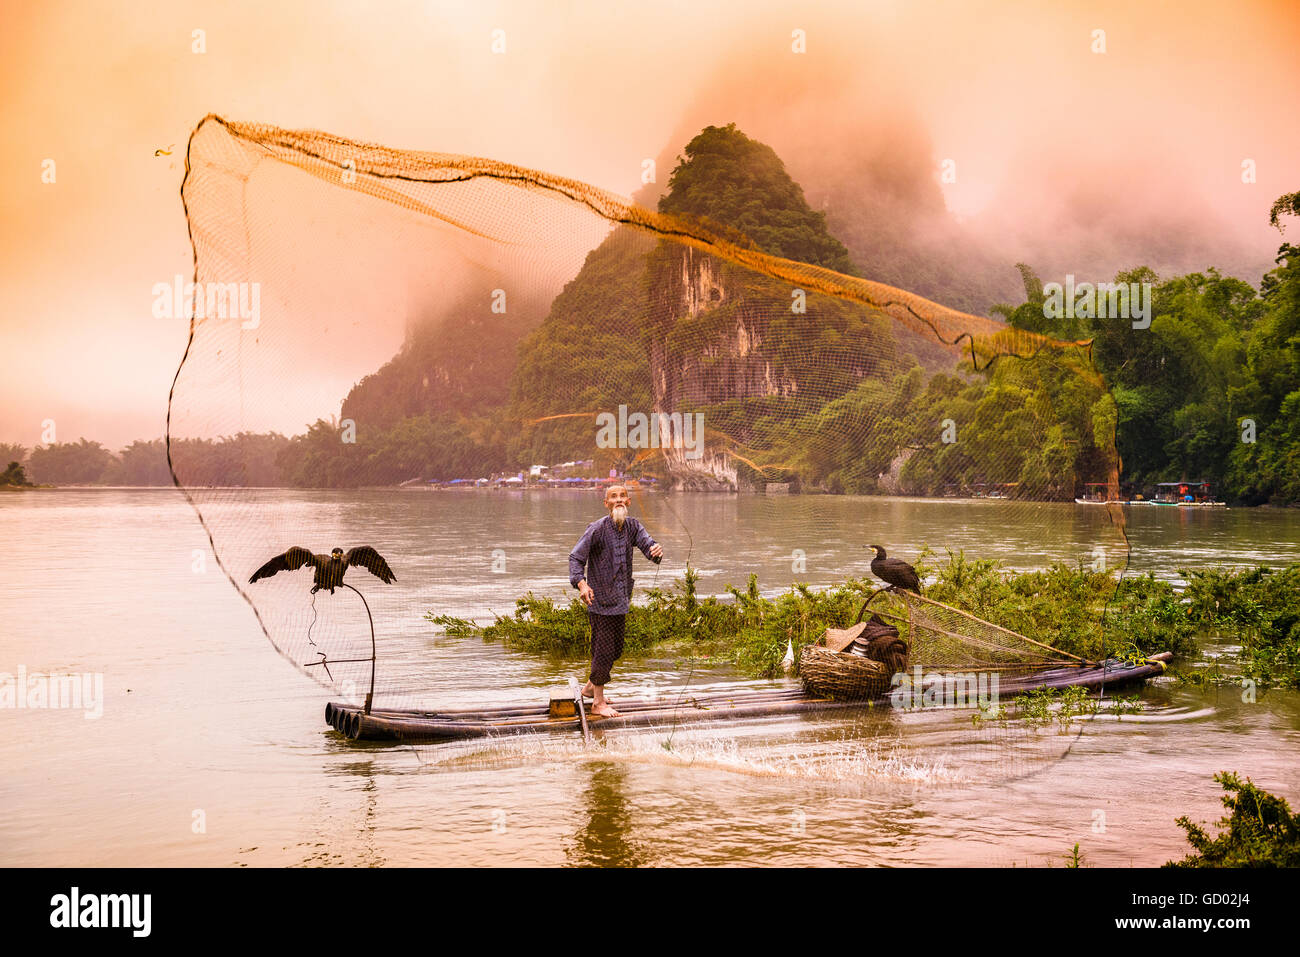 Traditional Chinese cormorant fisherman casts a net on the Li River in Yangshuo, China. - Stock Image